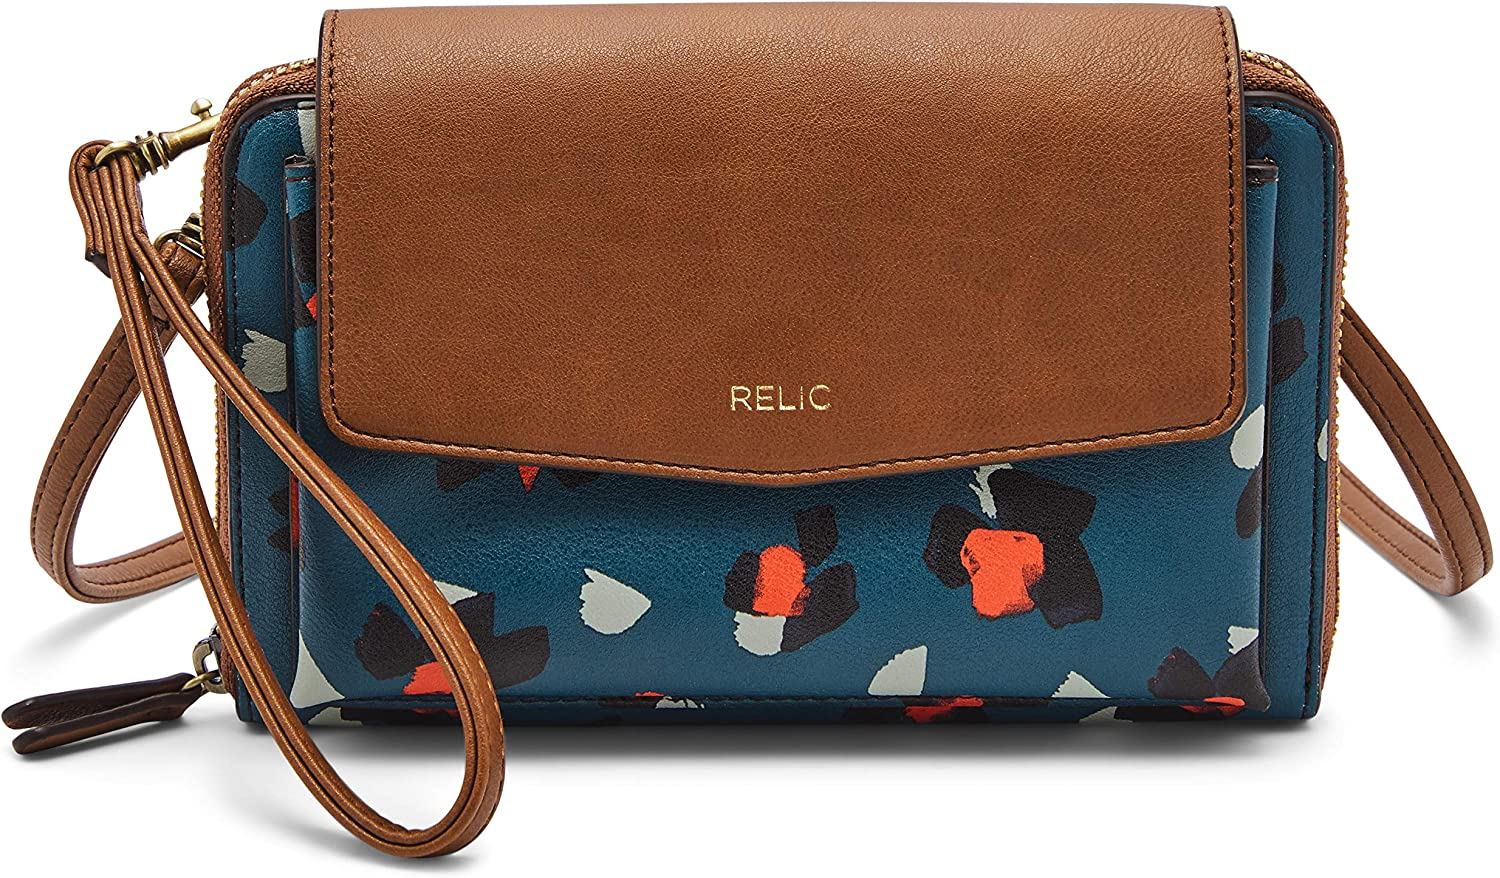 Relic trust by Fossil Limited Special Price Women's a String on Wallet